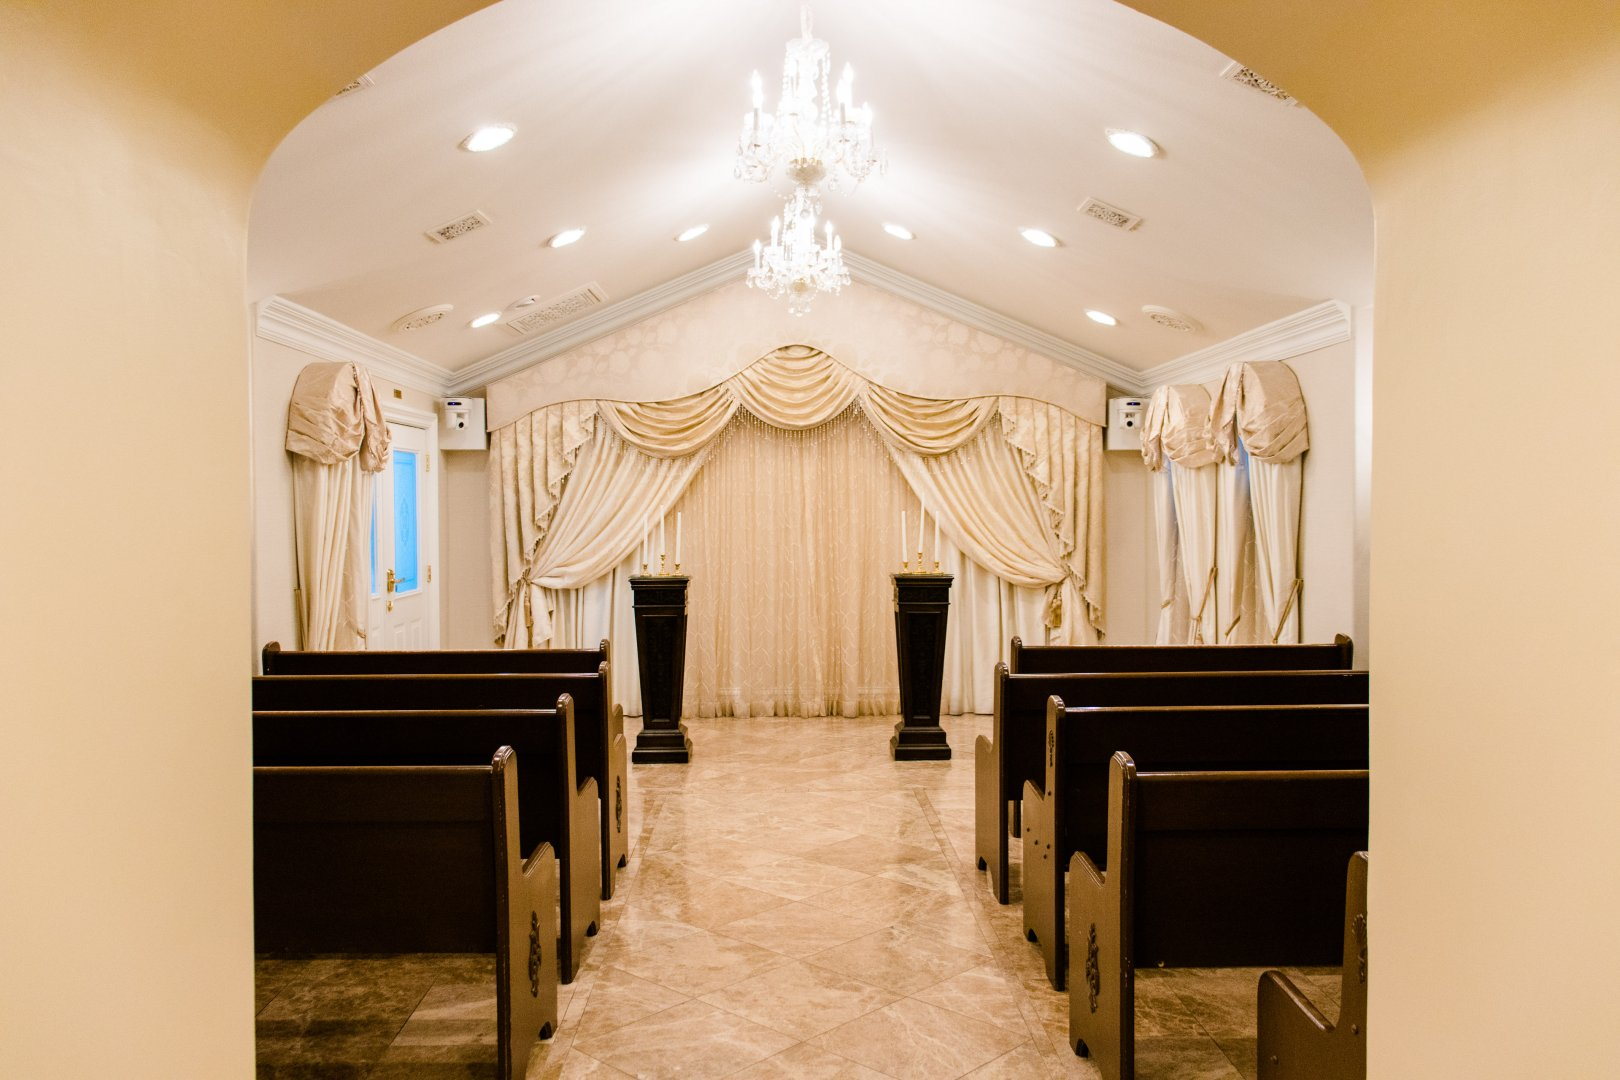 Room Property Building Interior design Ceiling Arch Lighting Chapel Architecture Aisle Furniture Light fixture House Function hall Place of worship Hall Chandelier Interior design